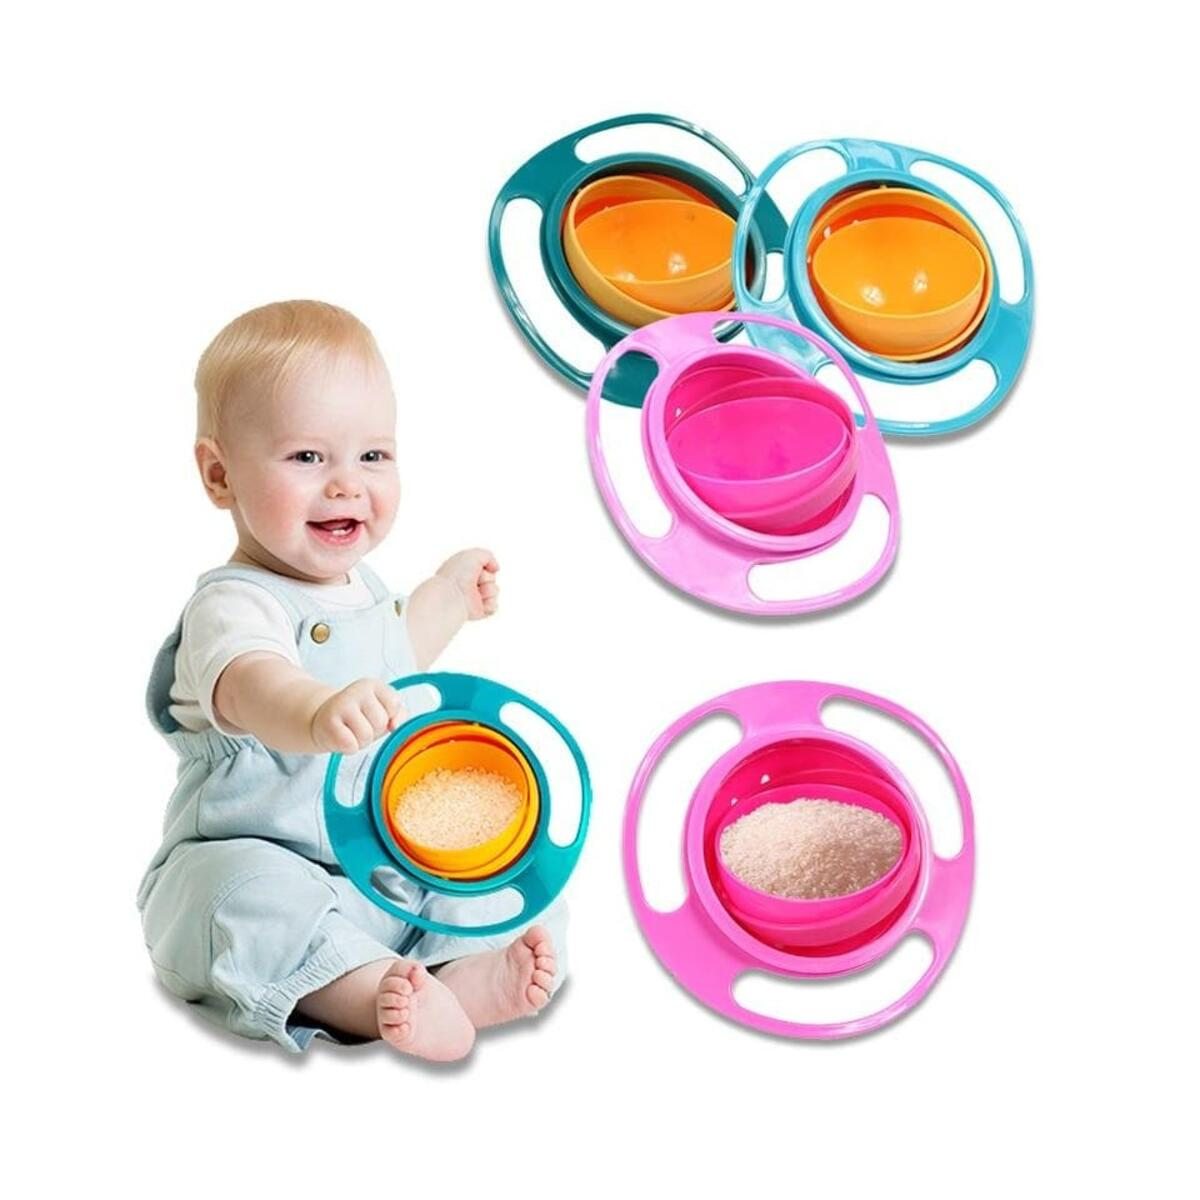 Kids Rotatable Spilling Resistant Bowl Dishes Baby Universal 360 Degree Feeding Toys